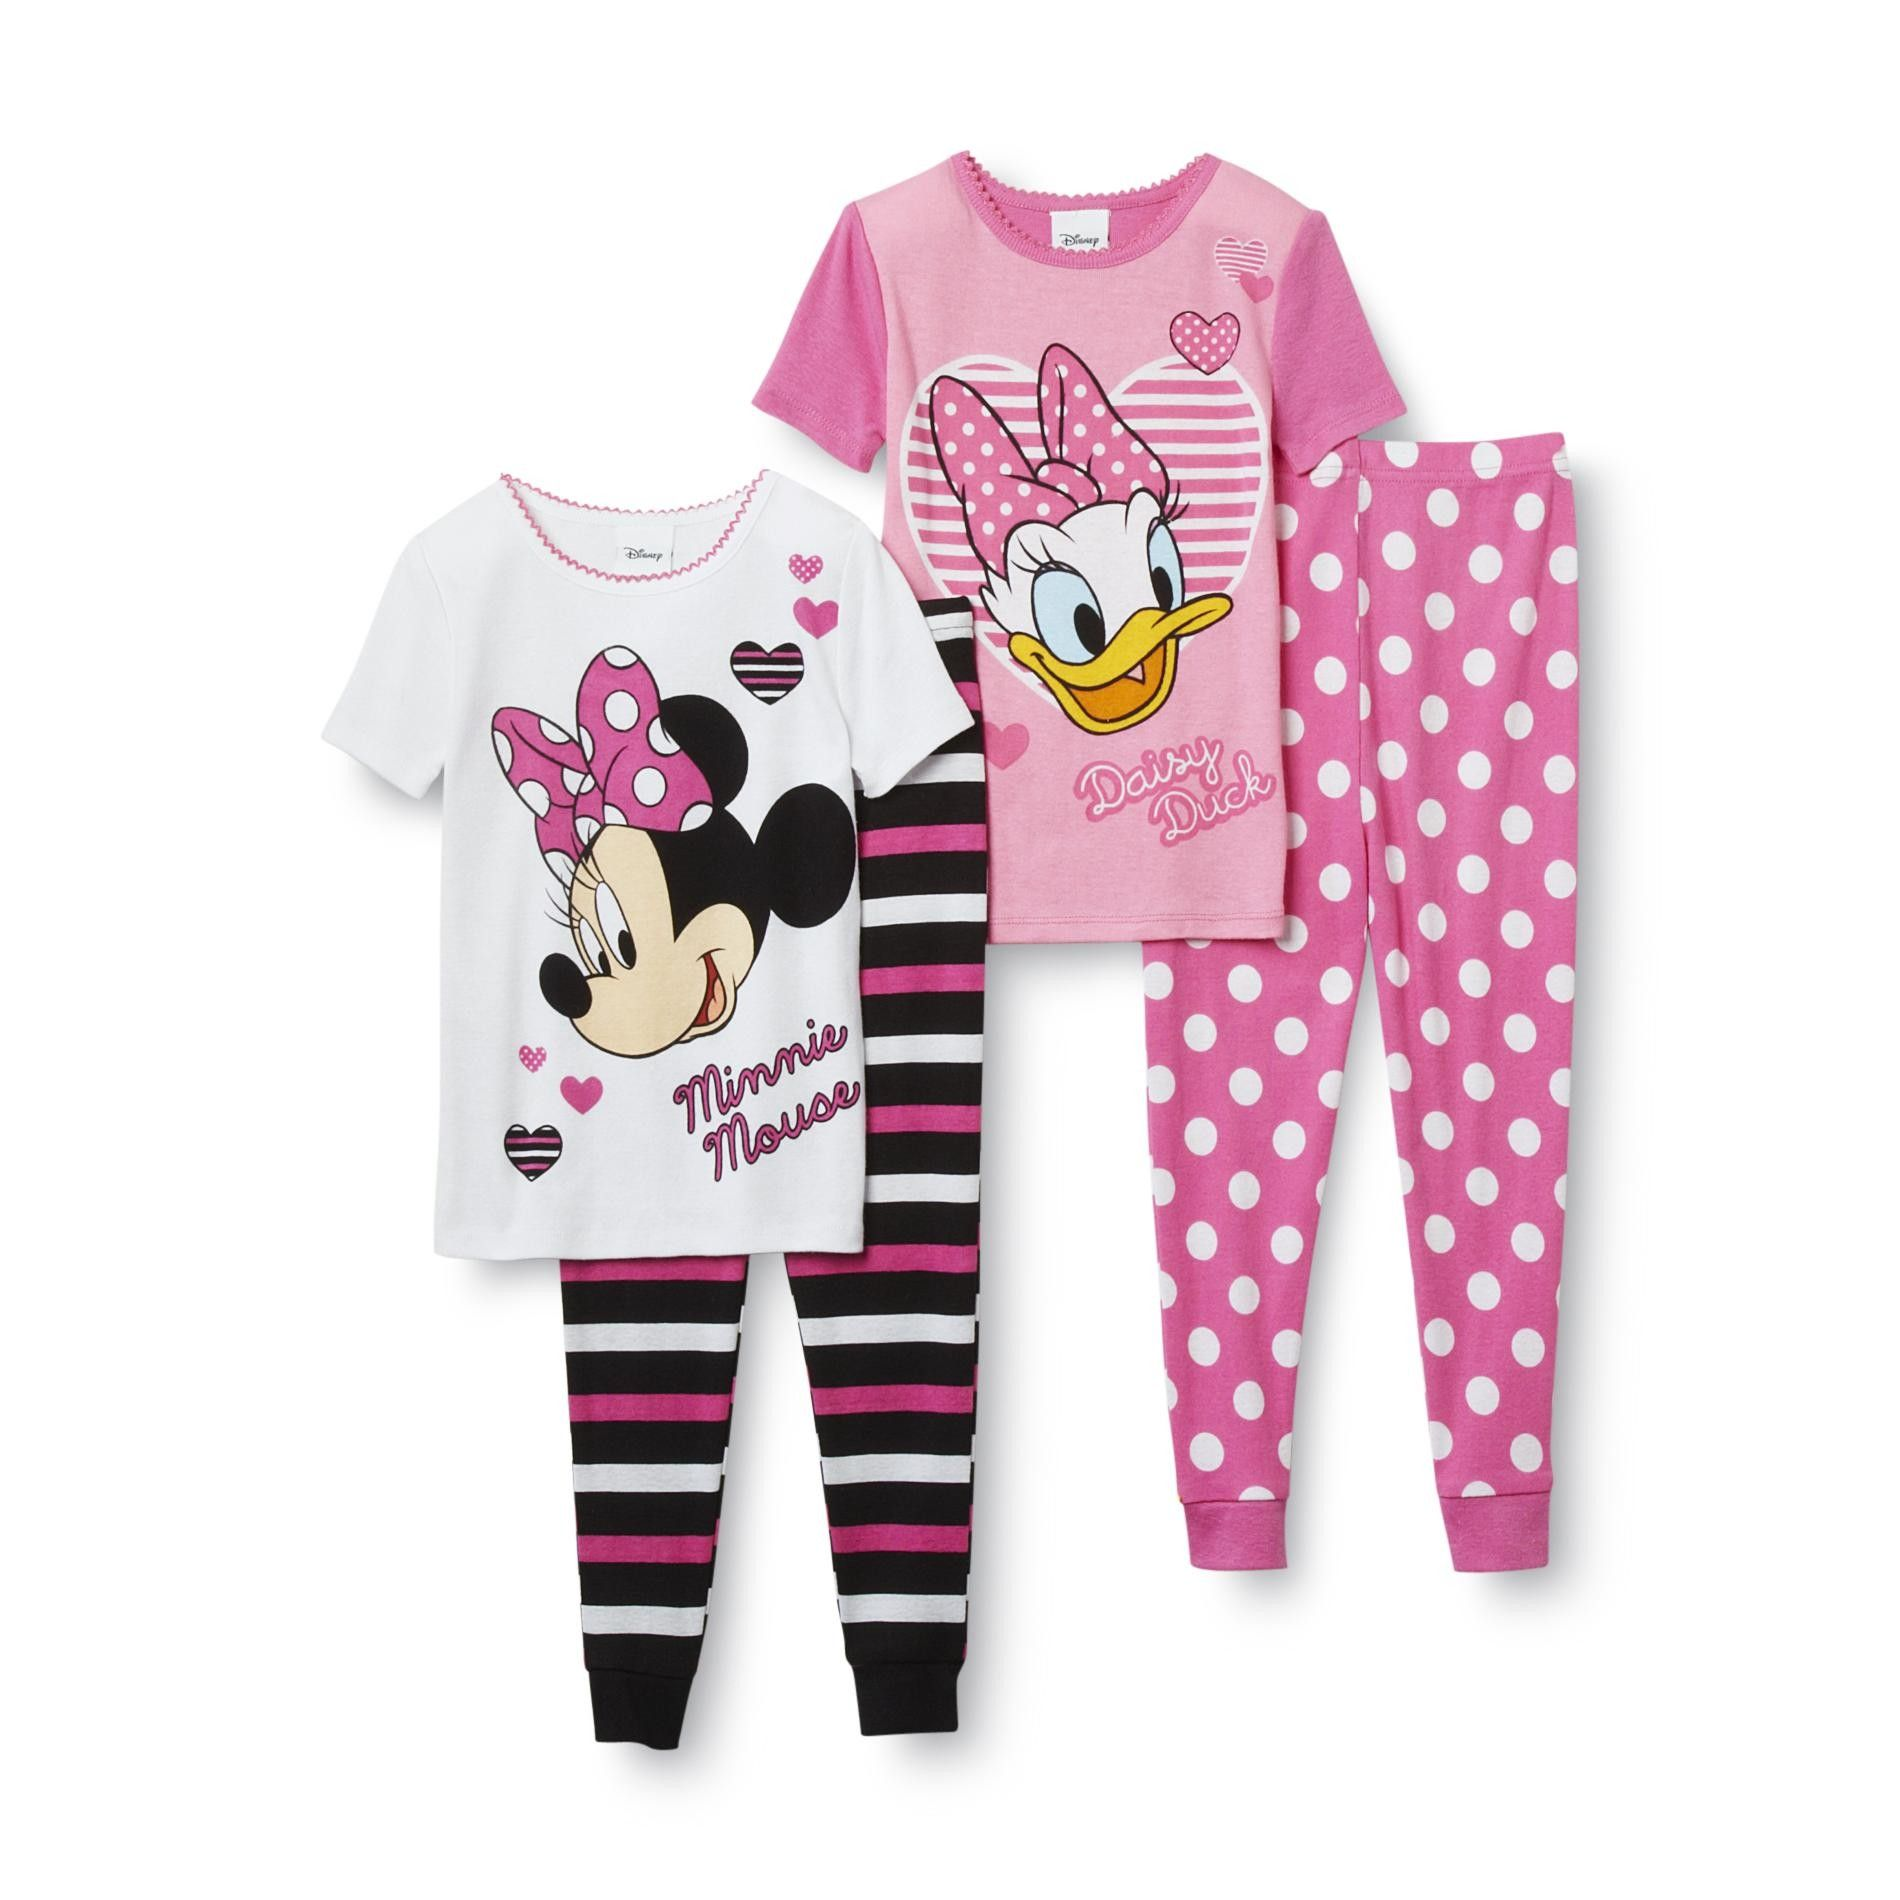 1d7c6e471 Disney Baby- -Minnie Mouse   Daisy Duck Toddler Girl s 2-Pair ...